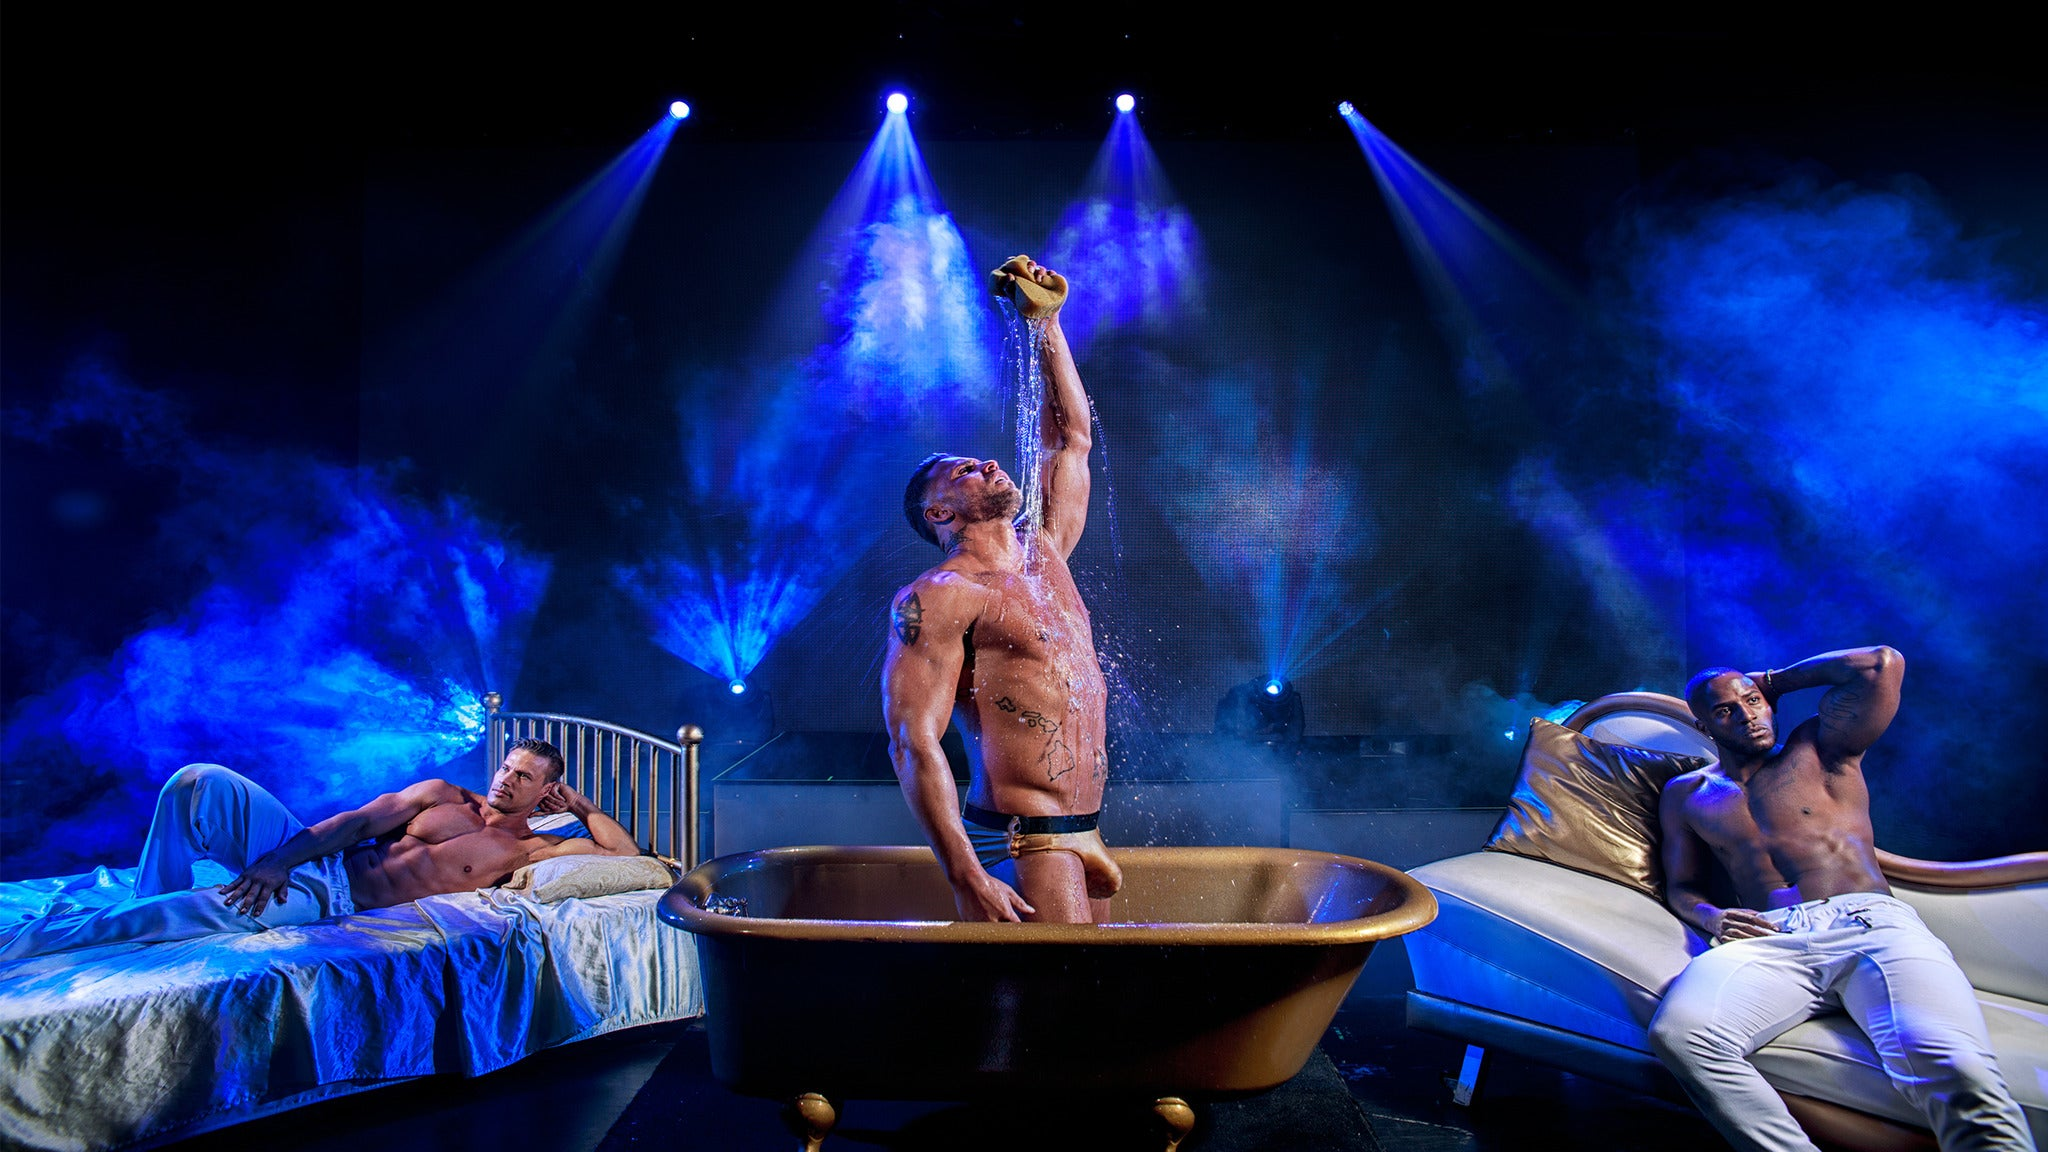 Chippendales: Let's Misbehave 2019 Tour